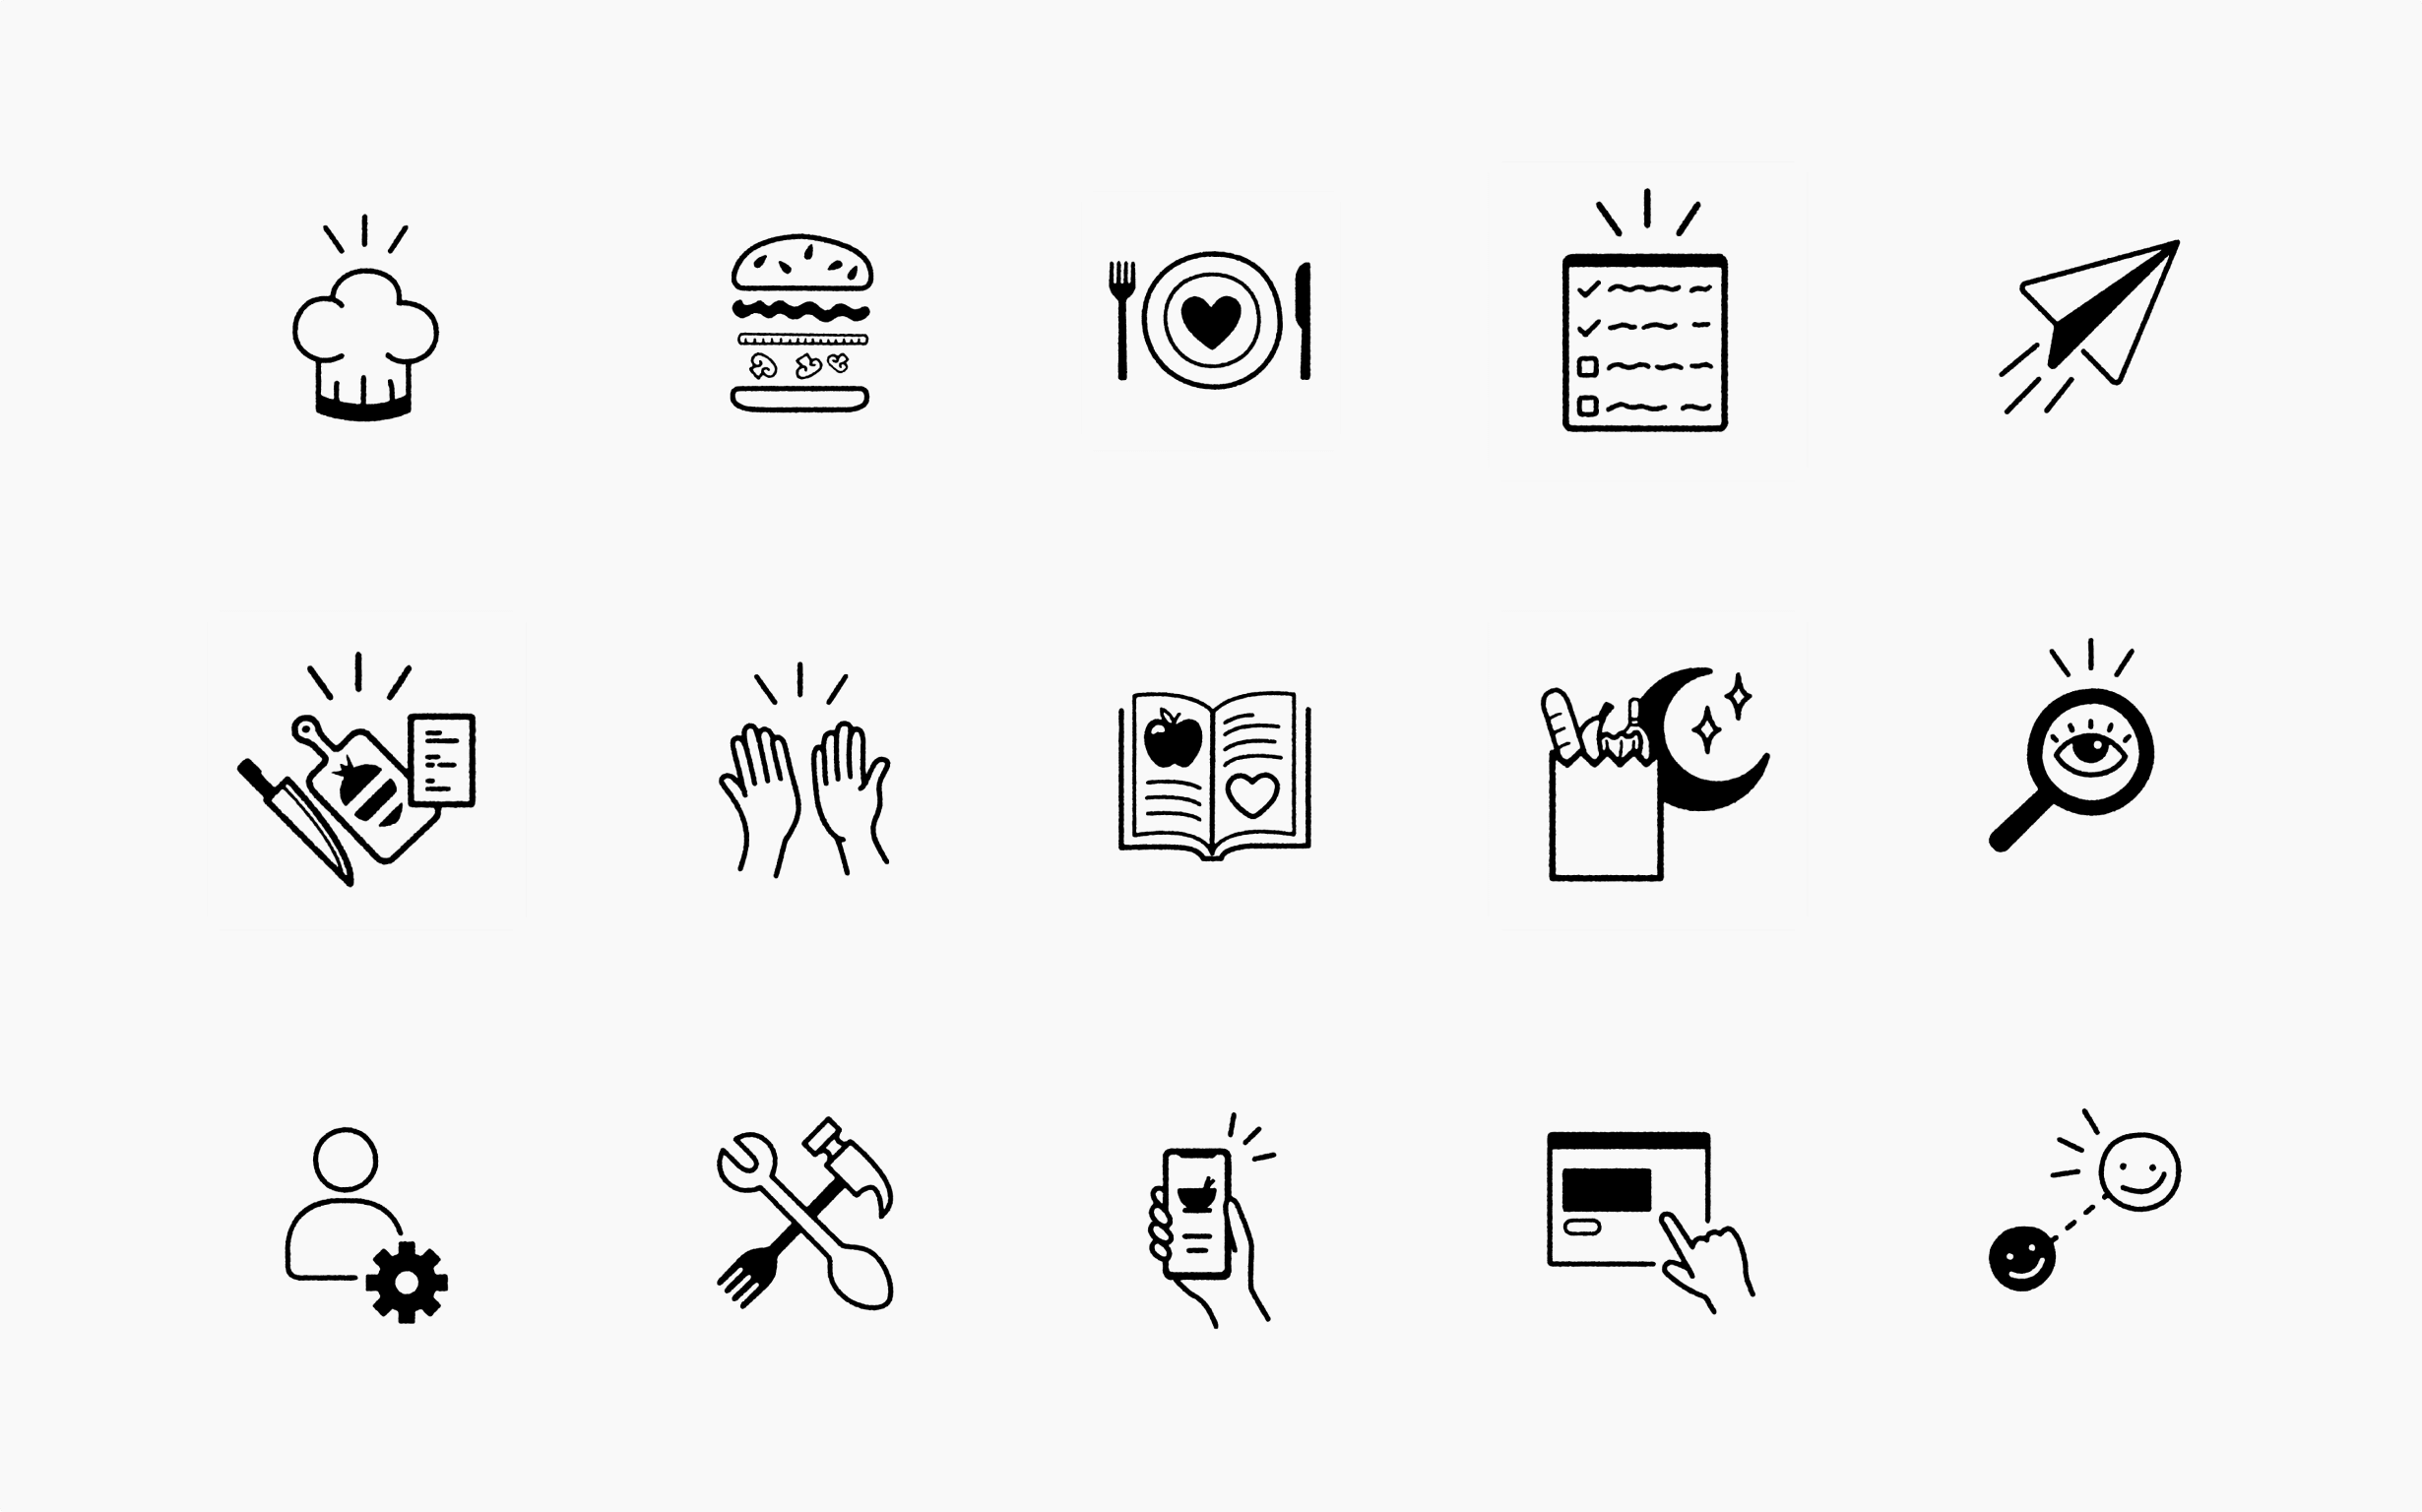 A group of 15 icons designed for Meal Hero's website, featuring food items and digital tools.